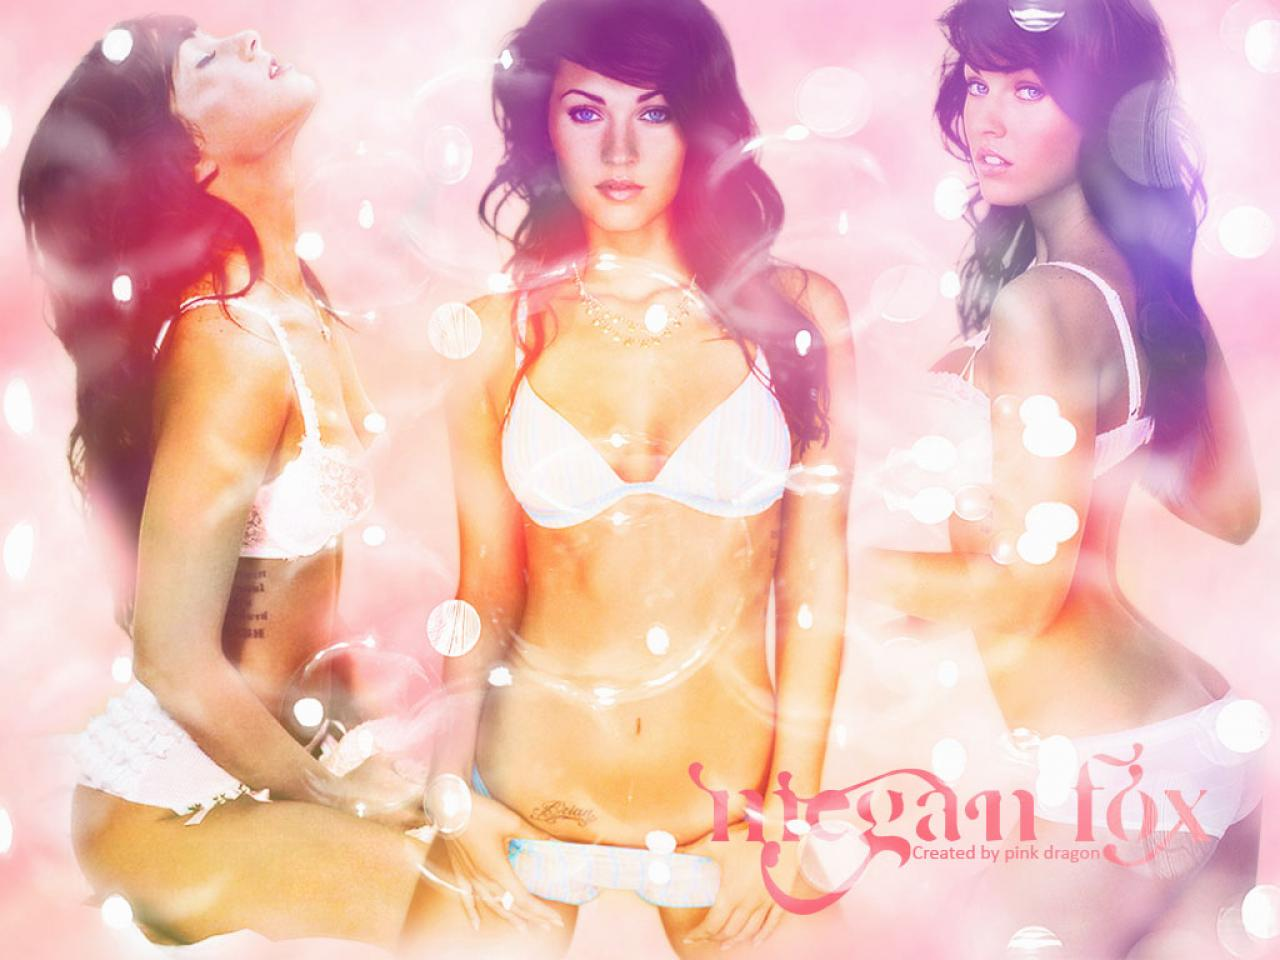 http://4.bp.blogspot.com/_BL2dw6BED4Y/TT6bQTqBBzI/AAAAAAAAAB4/U8NhAON0Ss0/s1600/megan-fox-wallpaper%252C+megen+fox+sex+house%252C+megan+fox+hot+wallpaper%252C+new+megan+fox+wallpaper+2011%252C+megan+fox+sex+video+download%252C+owsome+megan+fox+wallpaper%252C+download+for+megan+fox+picture%252C++2011+megan+fox+hd+rare.jpg